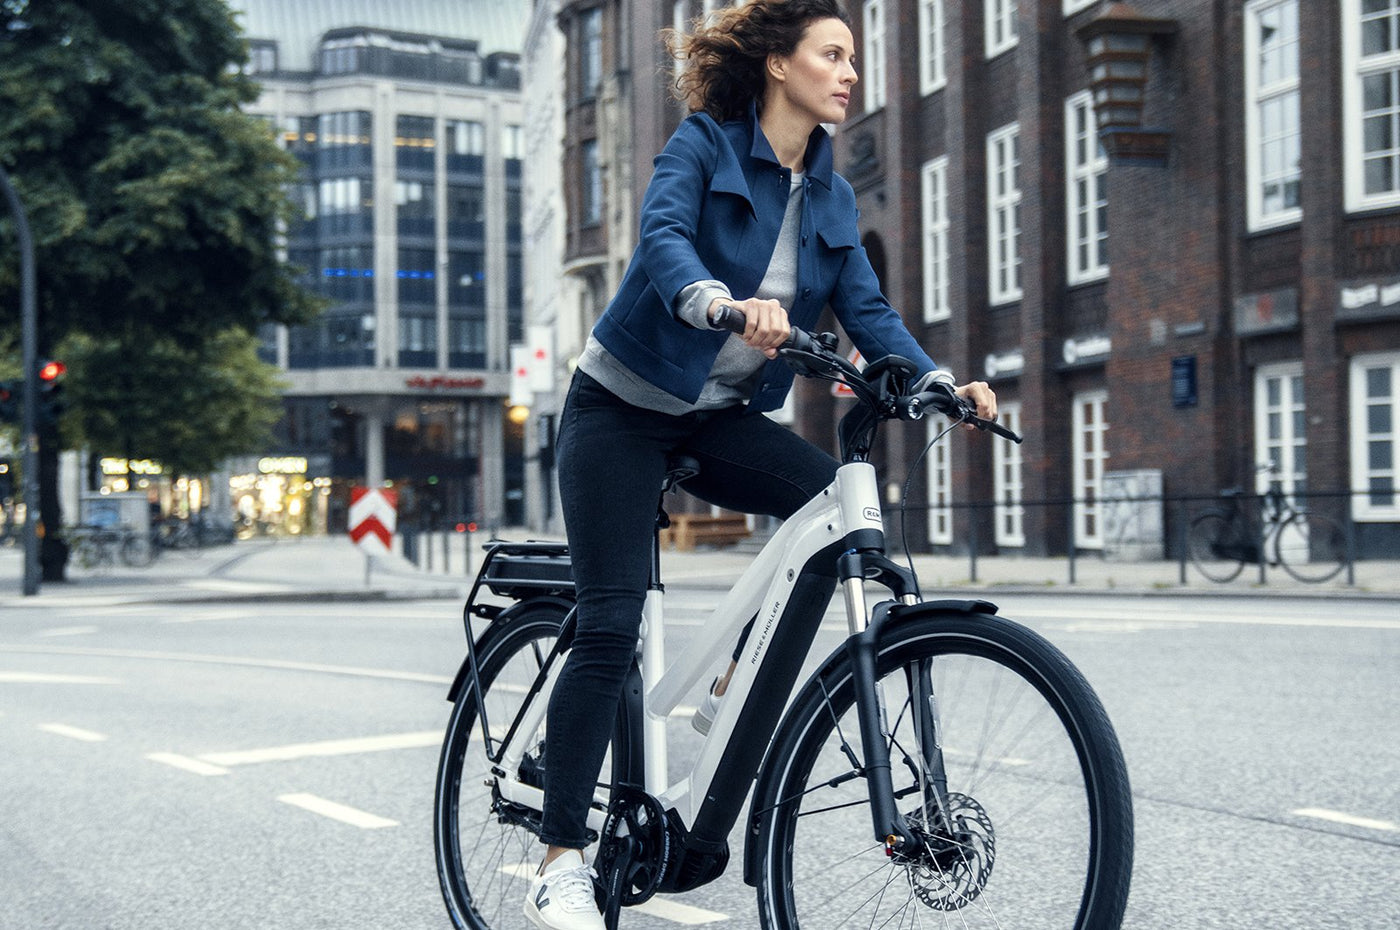 Women on hybrid e-bike